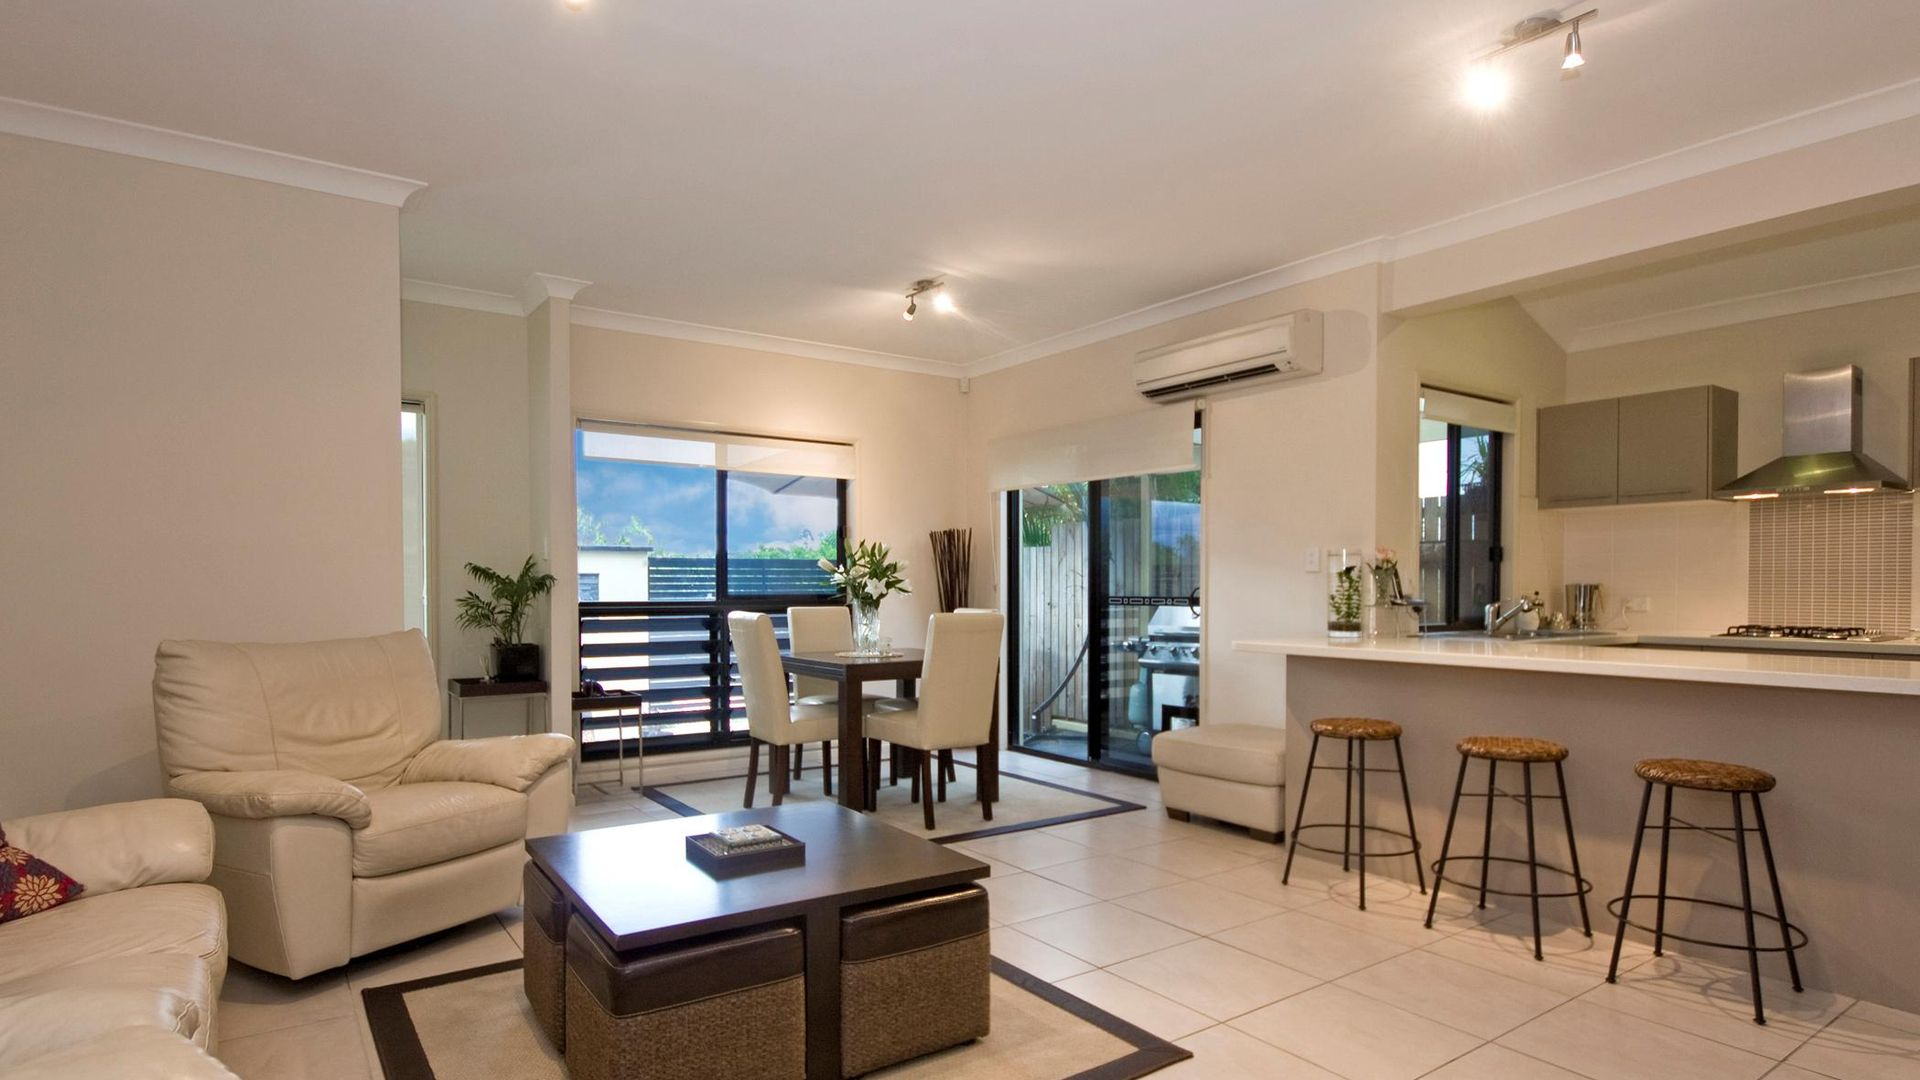 1/9 Curwen Terrace, Chermside QLD 4032, Image 2